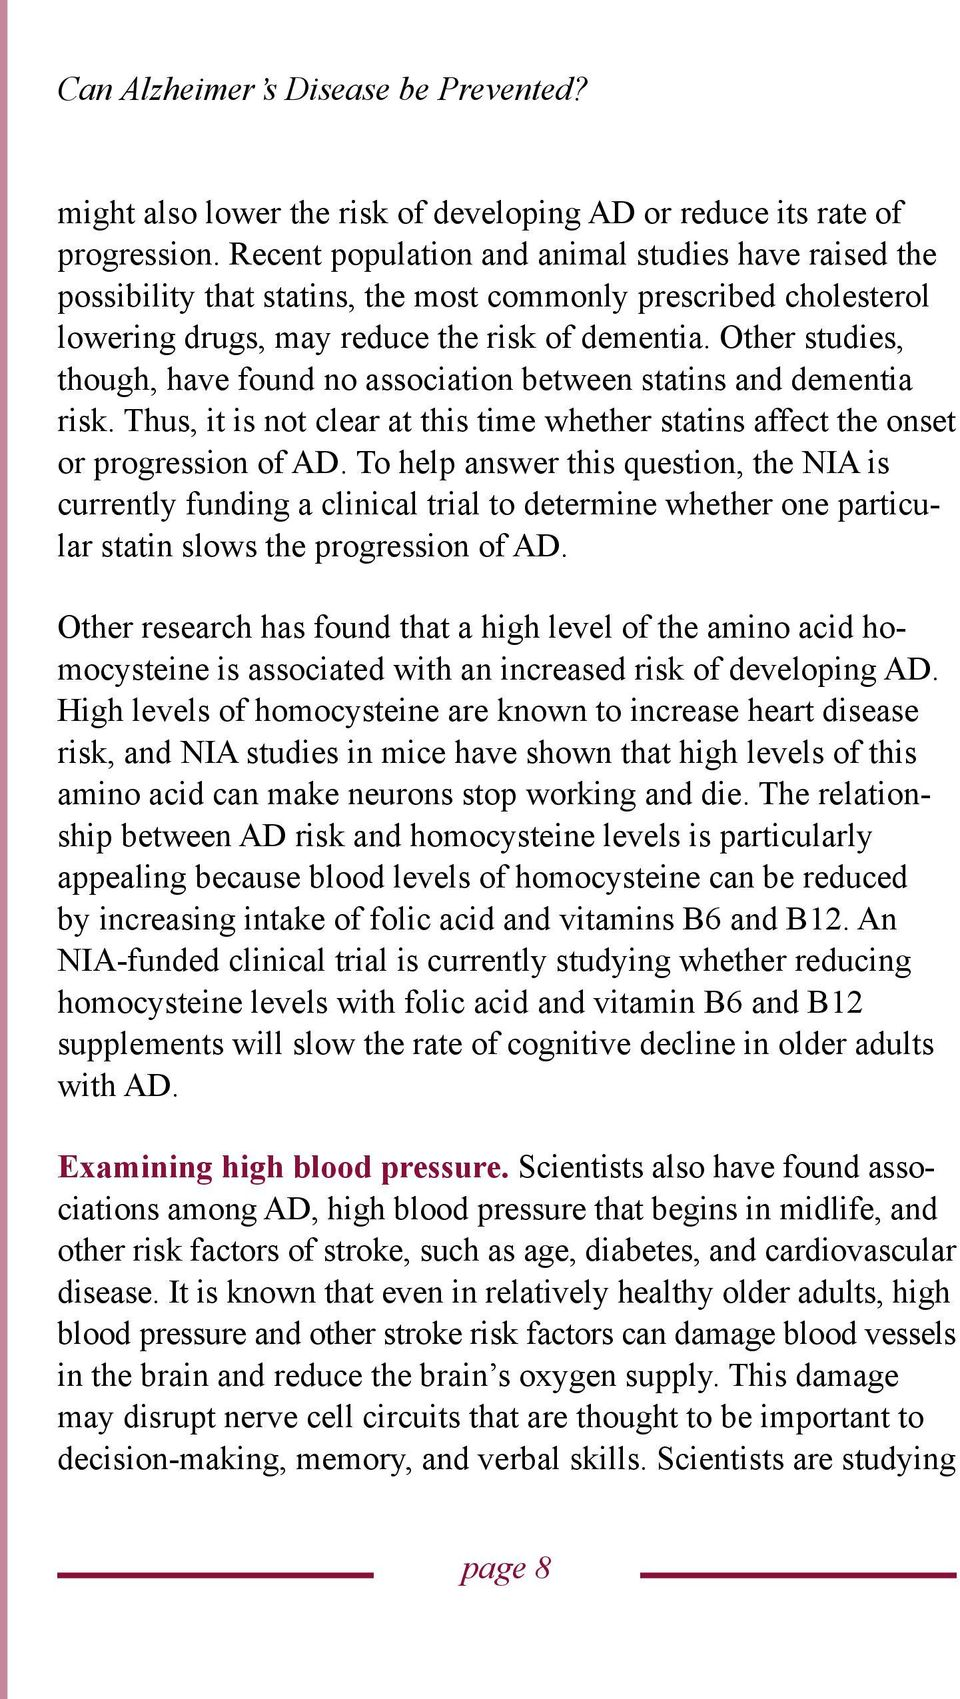 Other studies, though, have found no association between statins and dementia risk. Thus, it is not clear at this time whether statins affect the onset or progression of AD.